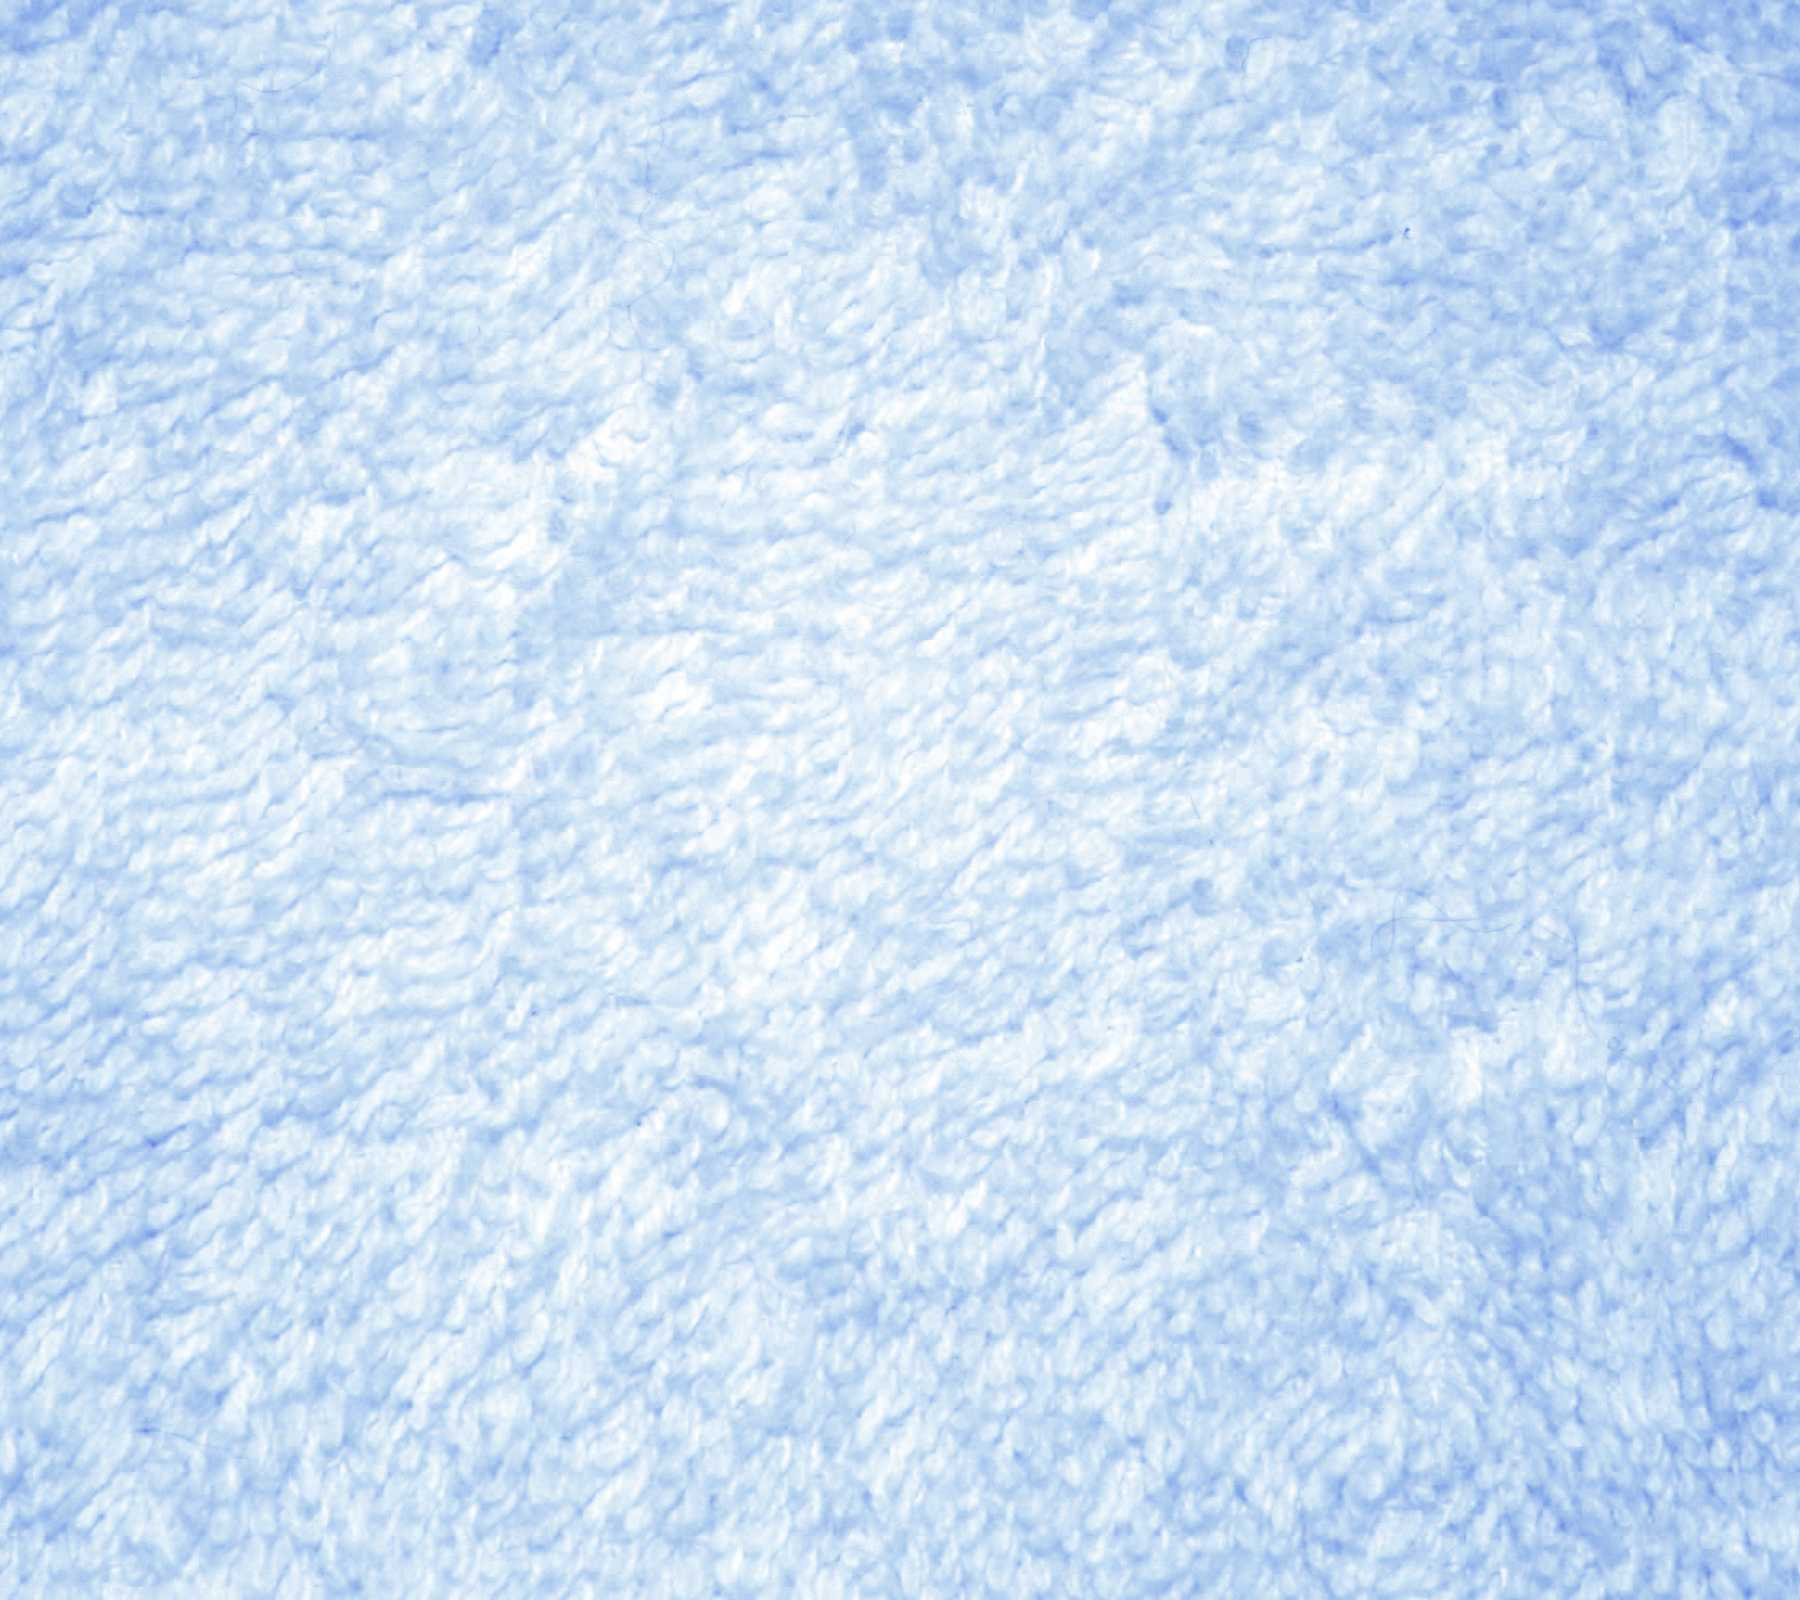 Baby Blue Terry Cloth Towel Background Image Wallpaper or Texture 1800x1600